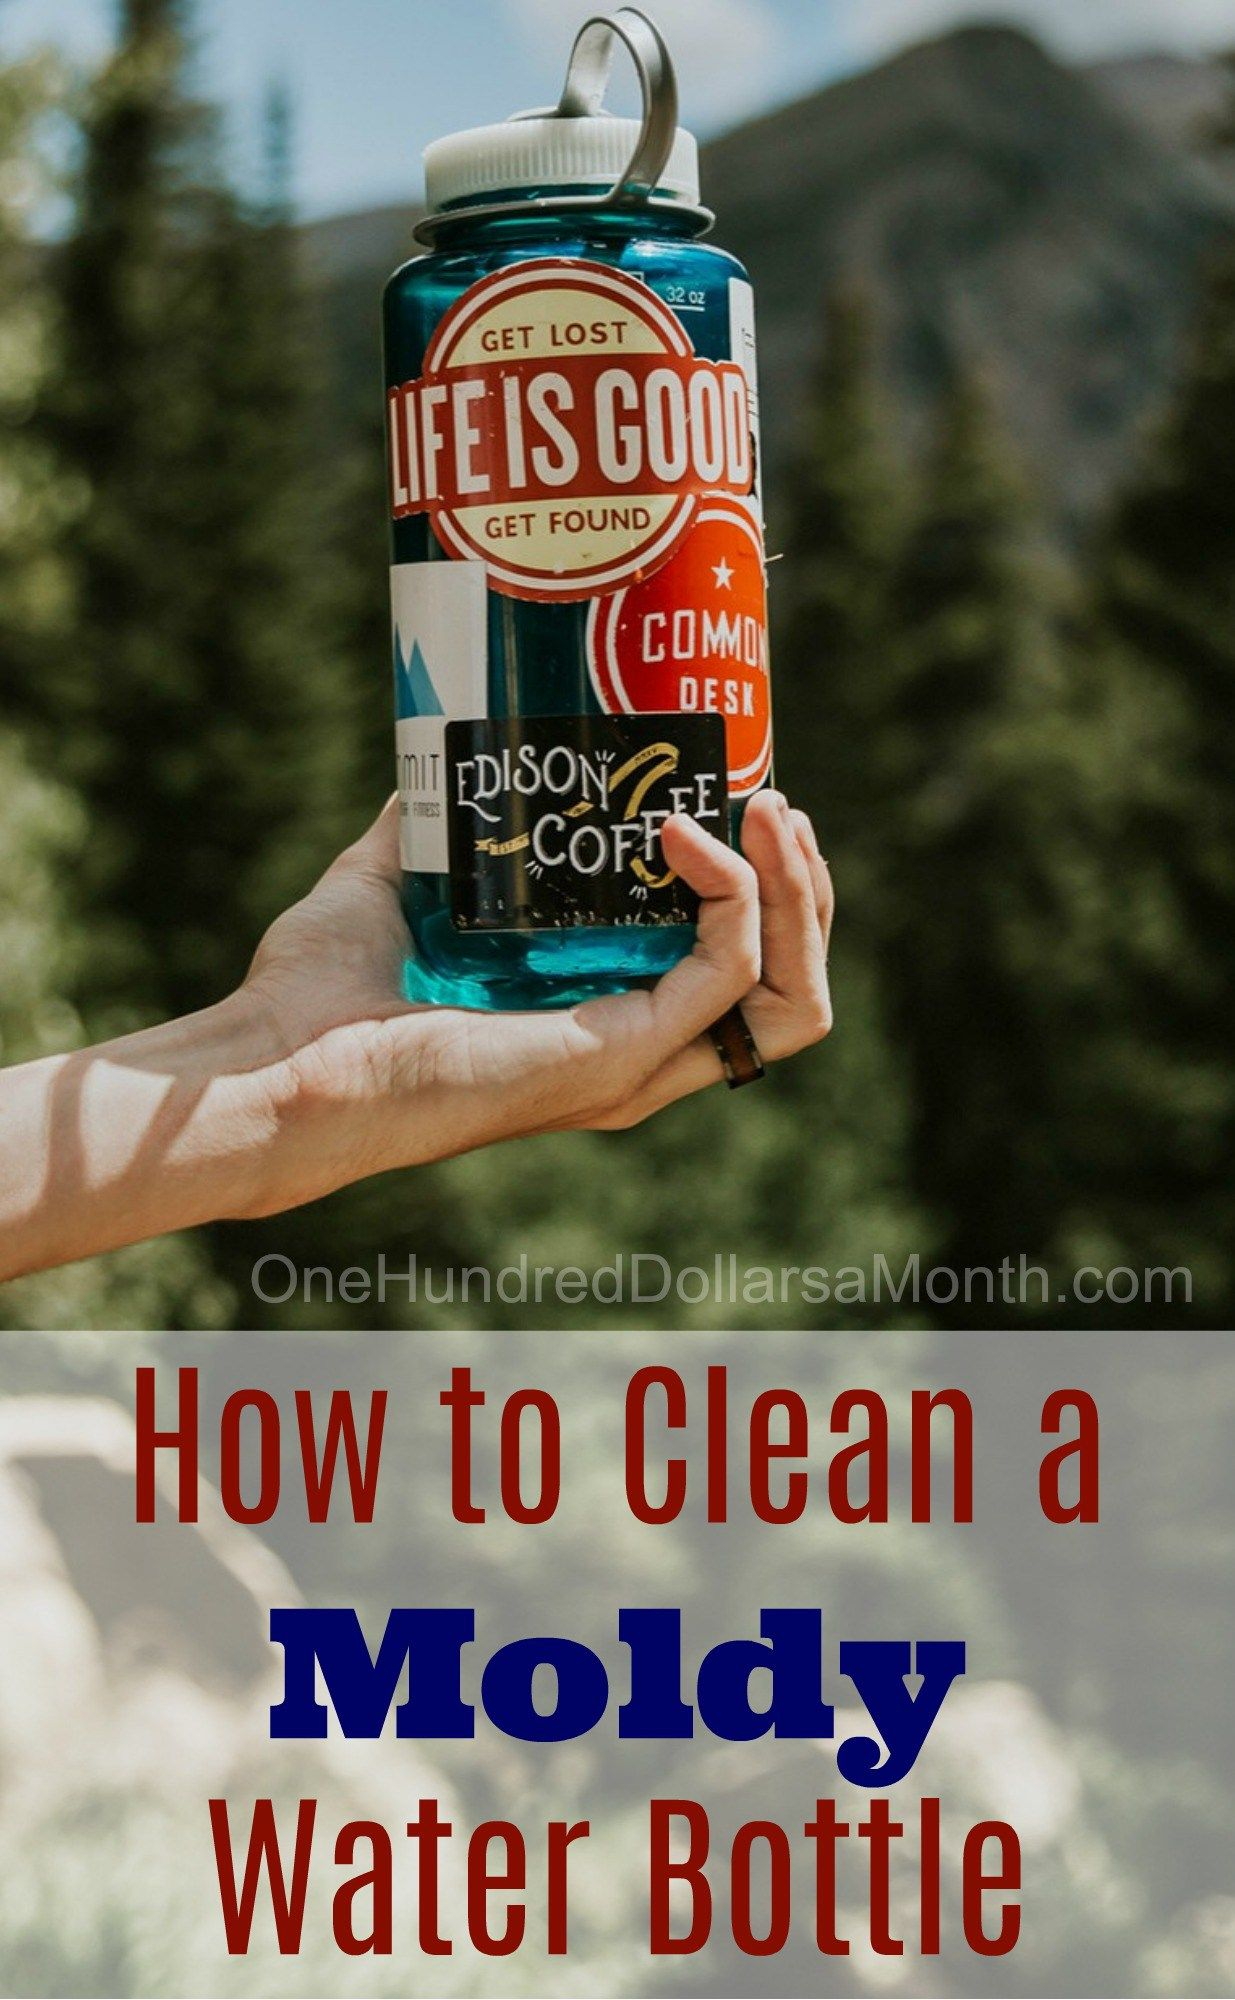 How to clean a moldy water bottle water bottle cleaning